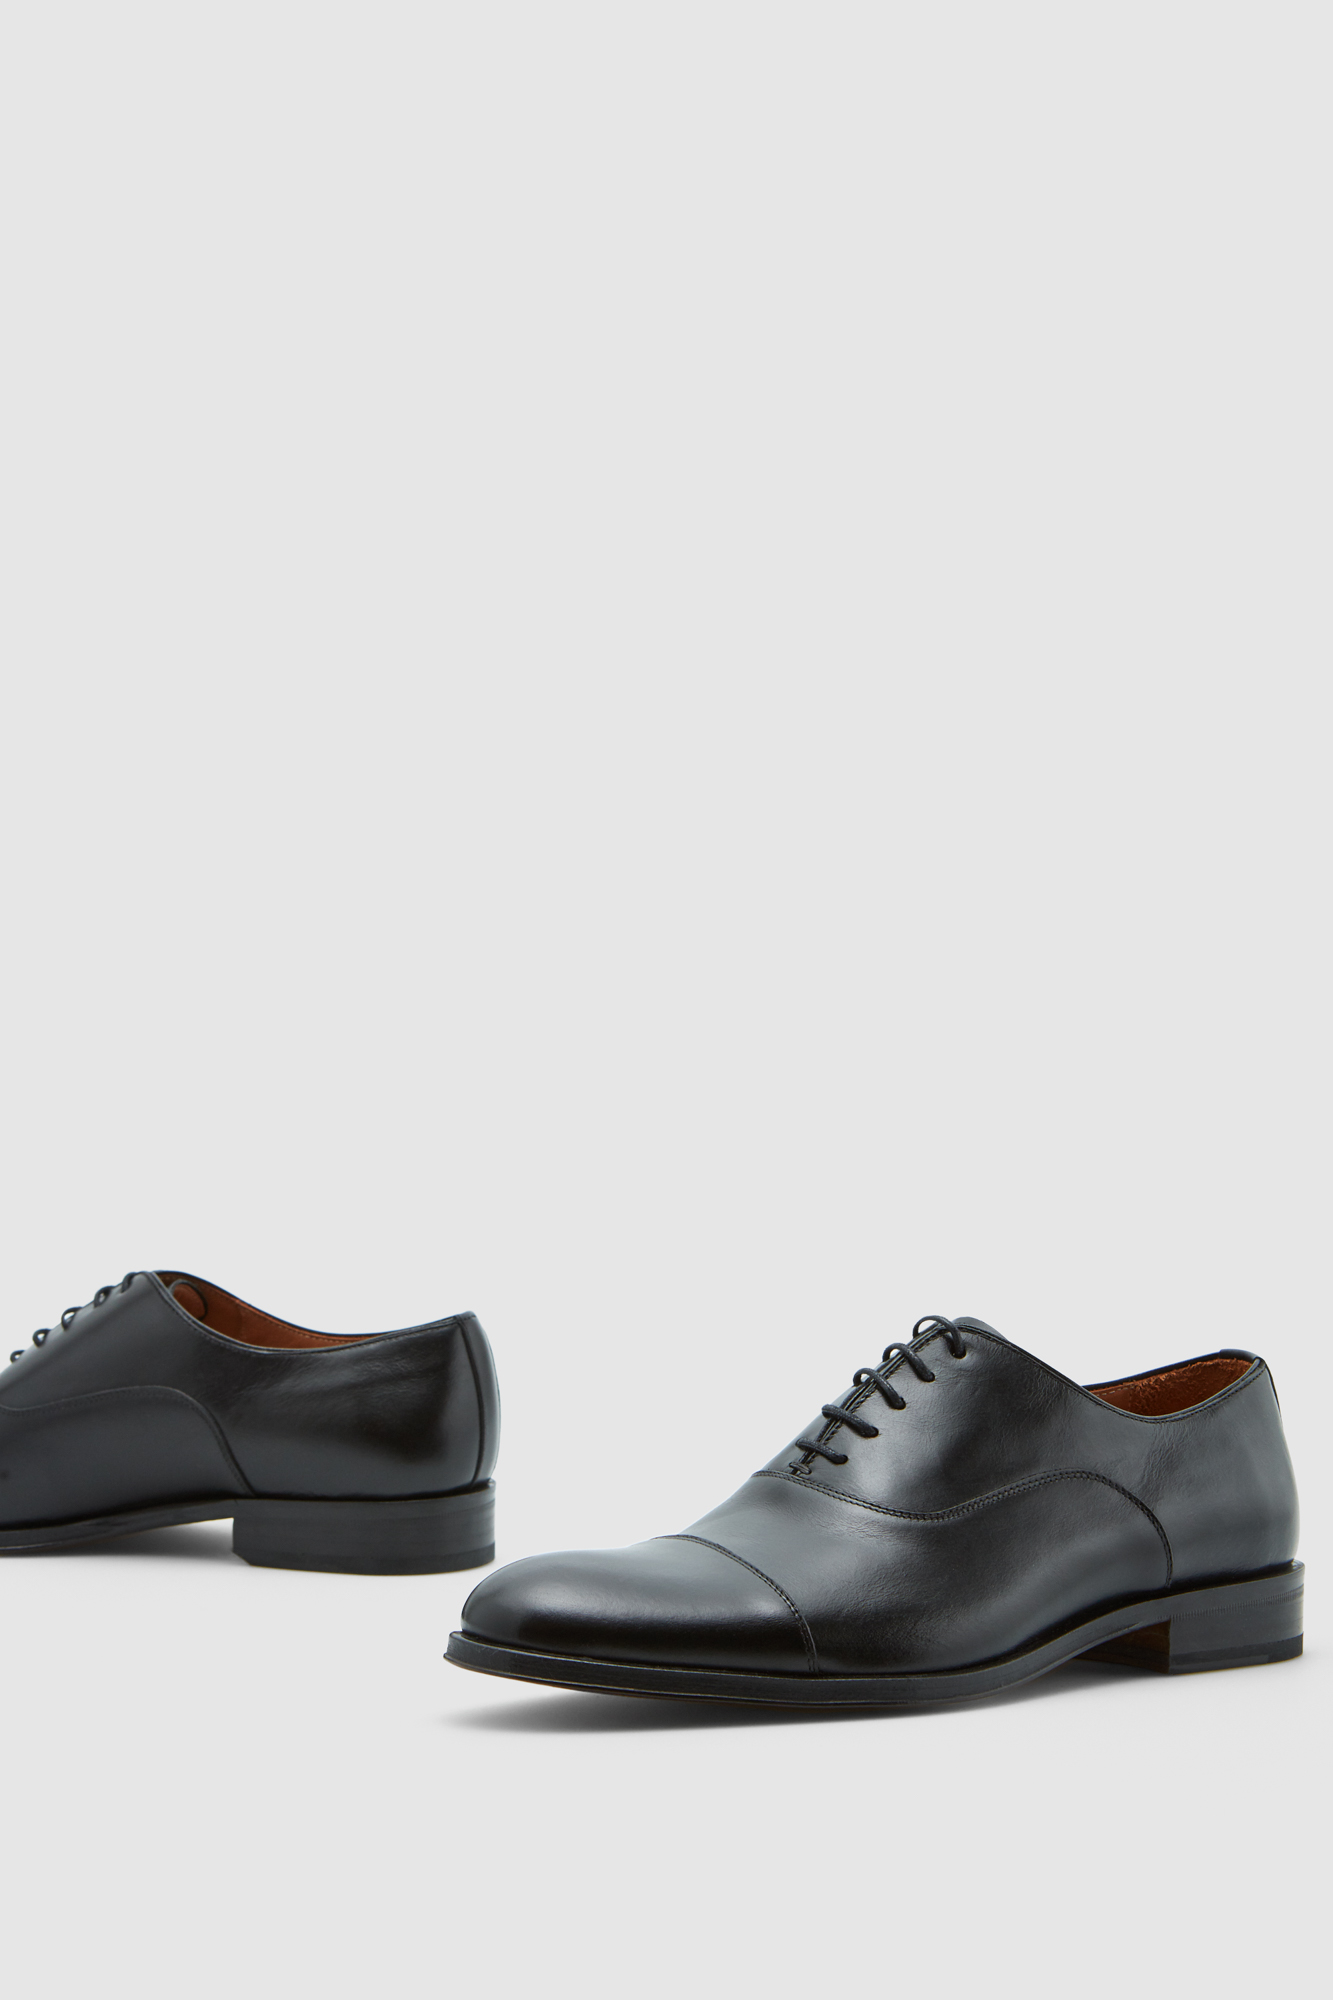 Leather Oxford shoes with laces | Special Prices | Pedro del Hierro Man & Woman